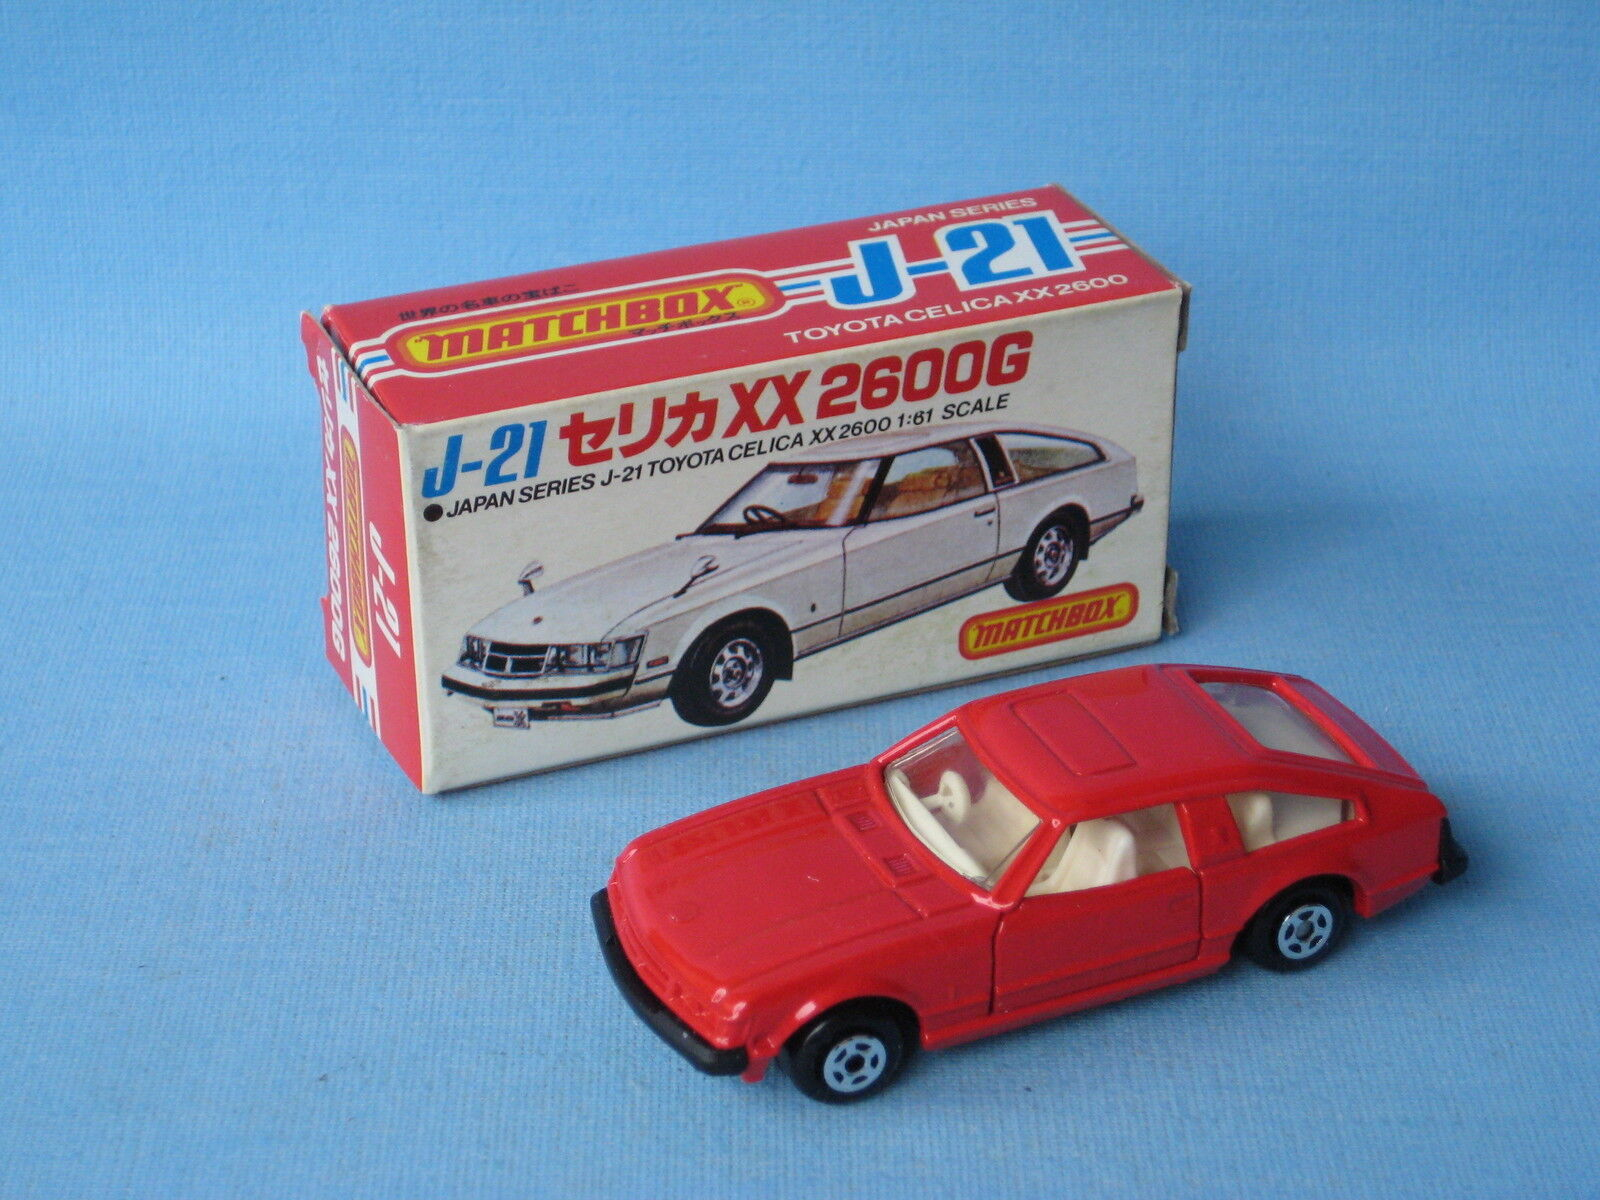 Lesney Matchbox Toyota Celica Red Japanese J-21 Picture Box Rare